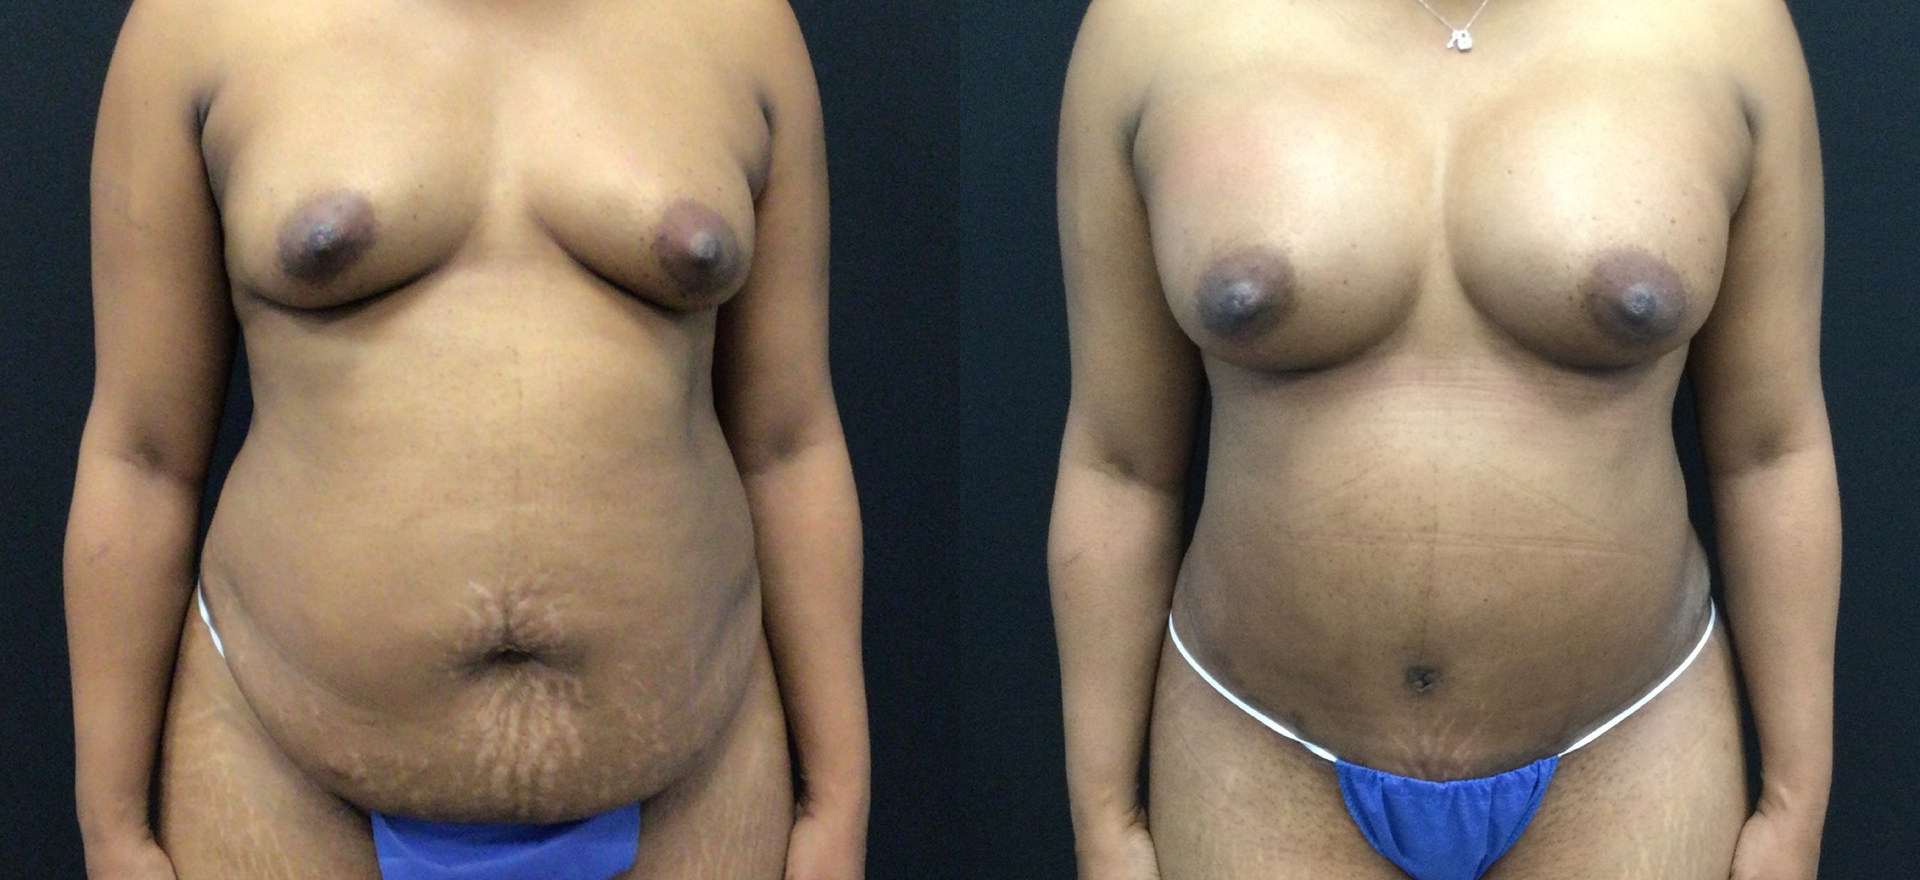 Before and After Tummy Tuck and Breast Implants